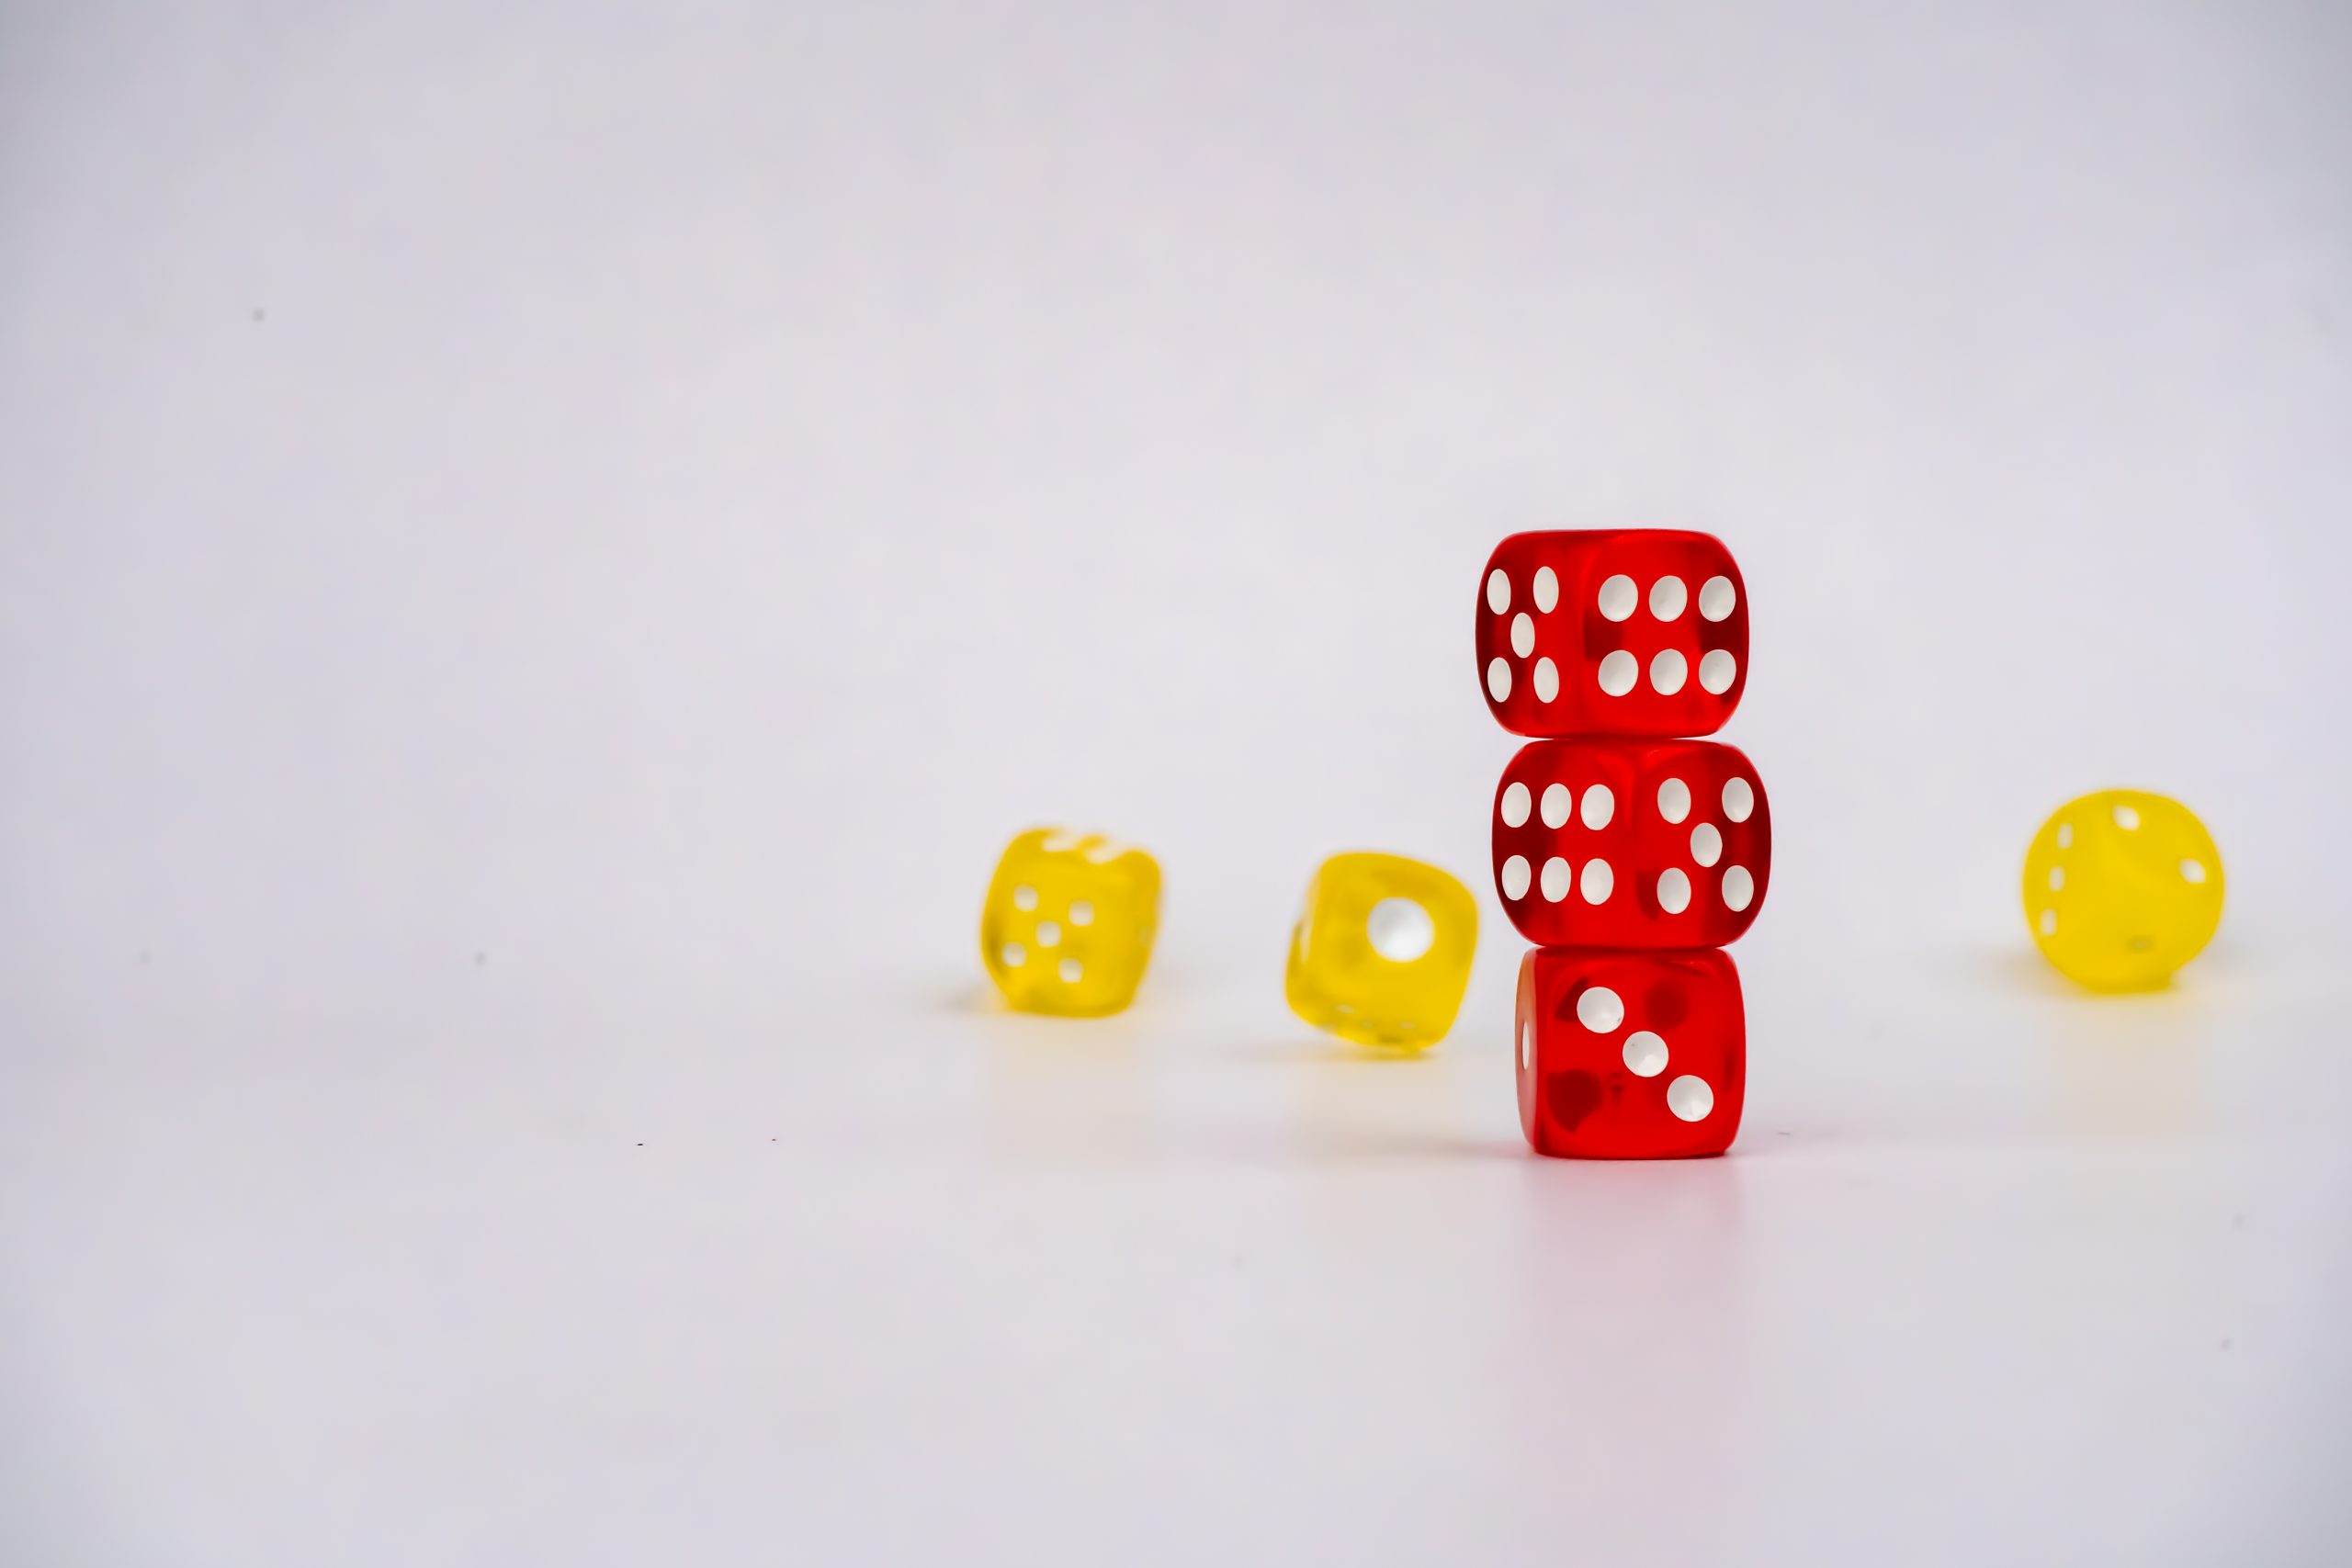 3 Red dices with yellow dices in background